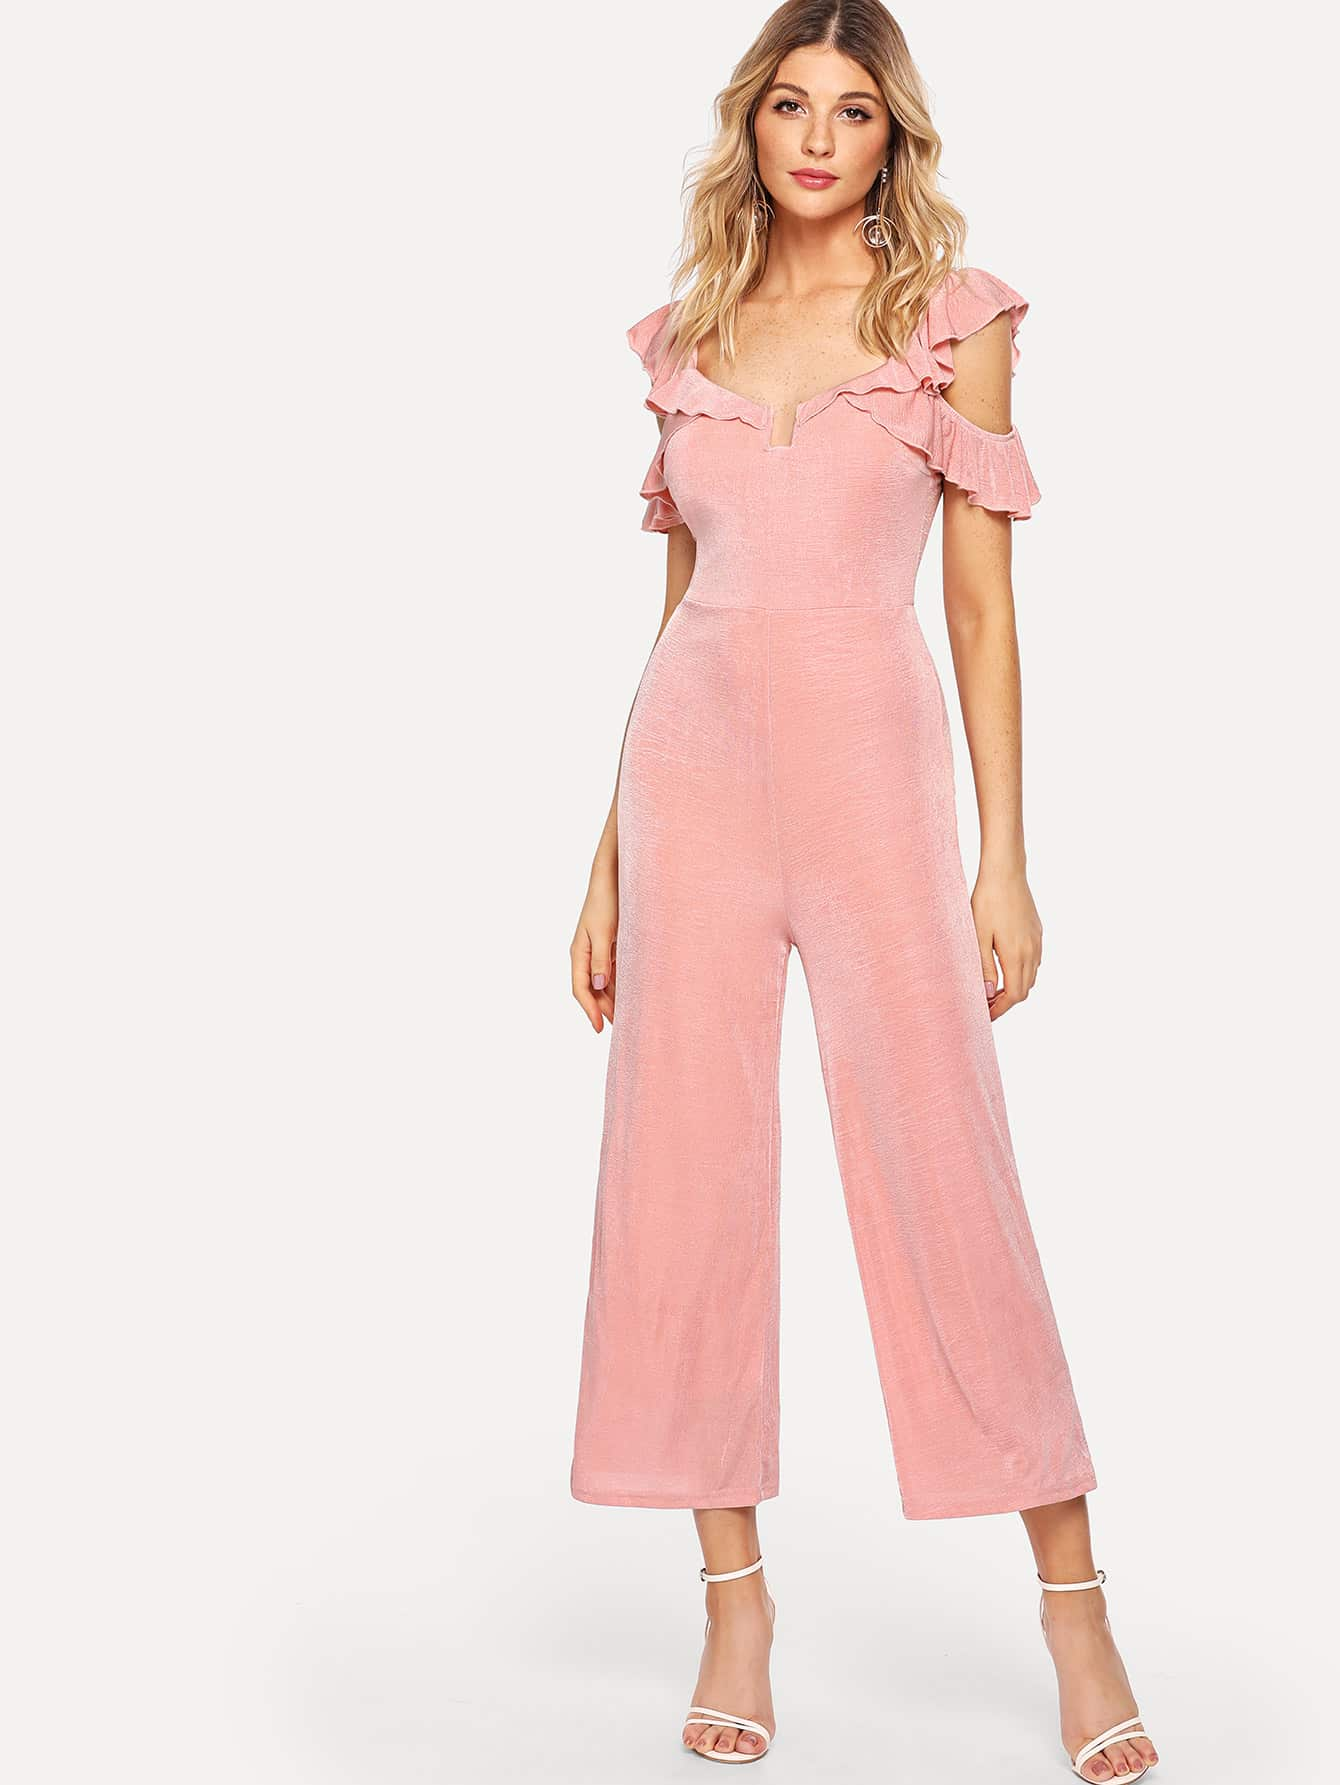 V-Neck Solid Ruffle Trim Jumpsuit choker neck embroidered ruffle trim jumpsuit